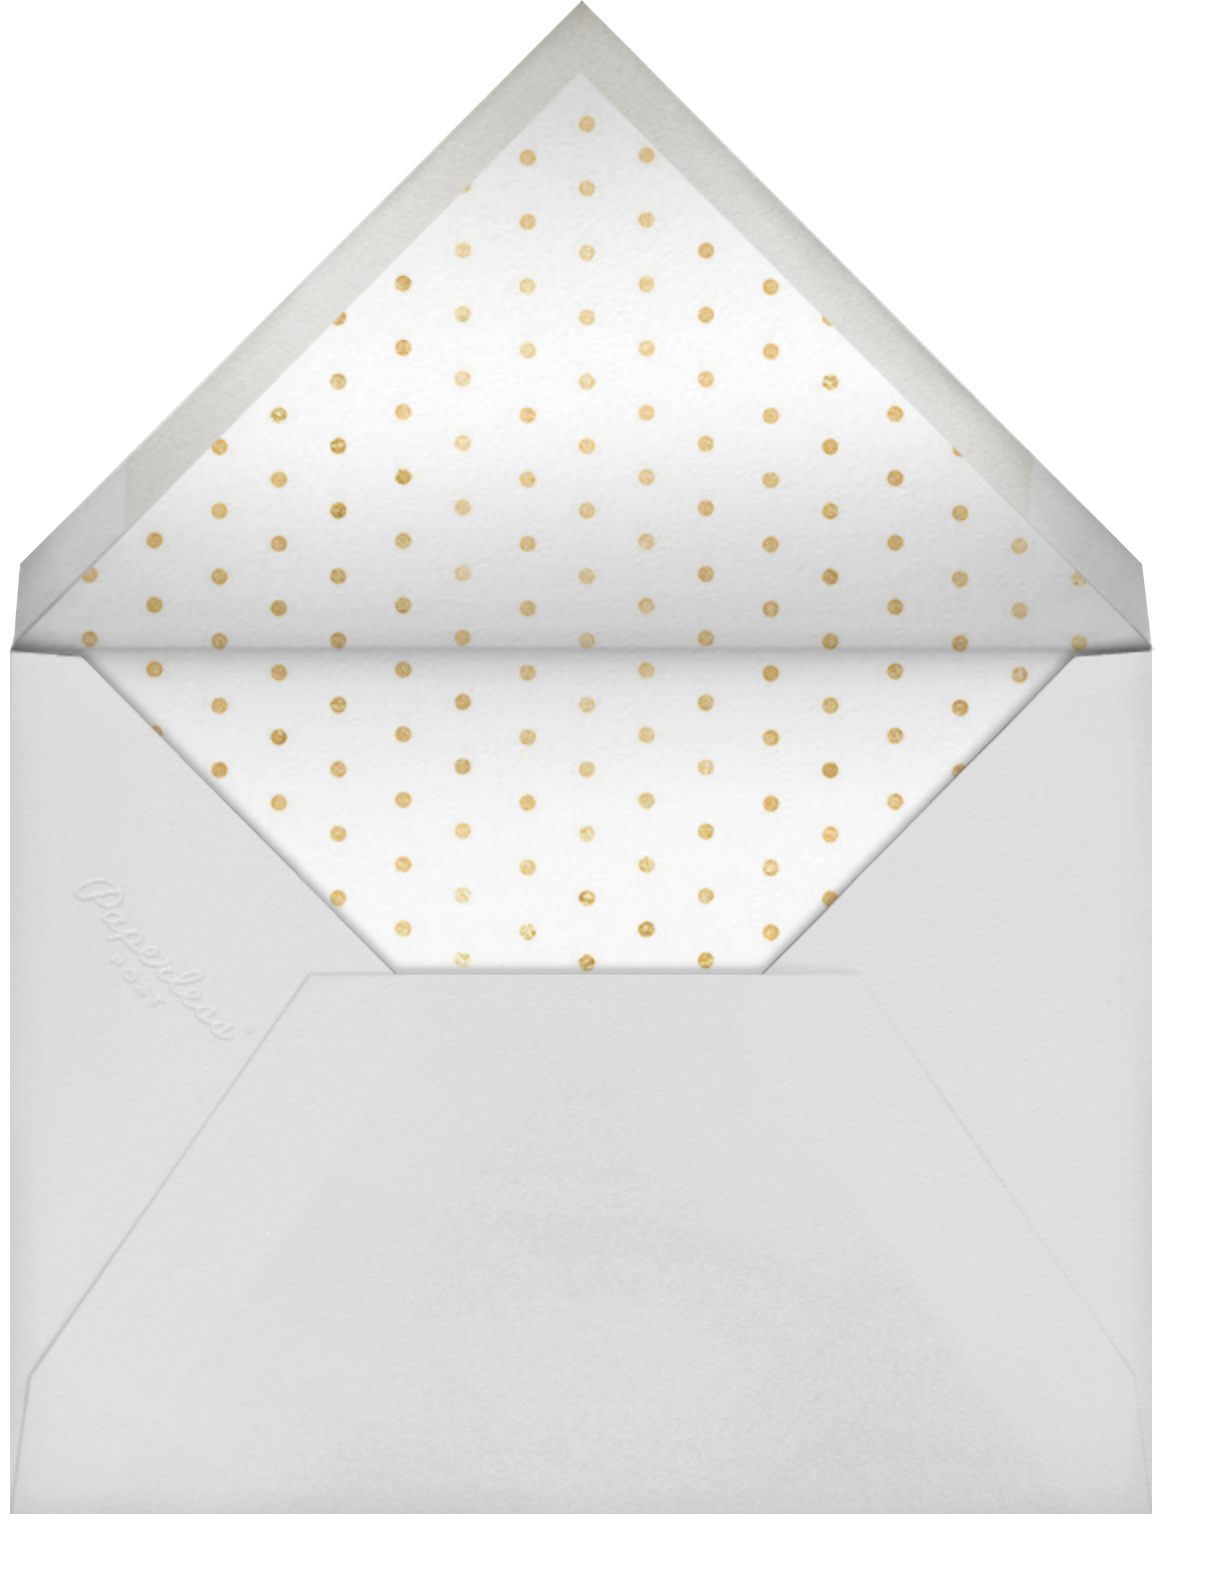 Candle Corner - kate spade new york - Birthday - envelope back